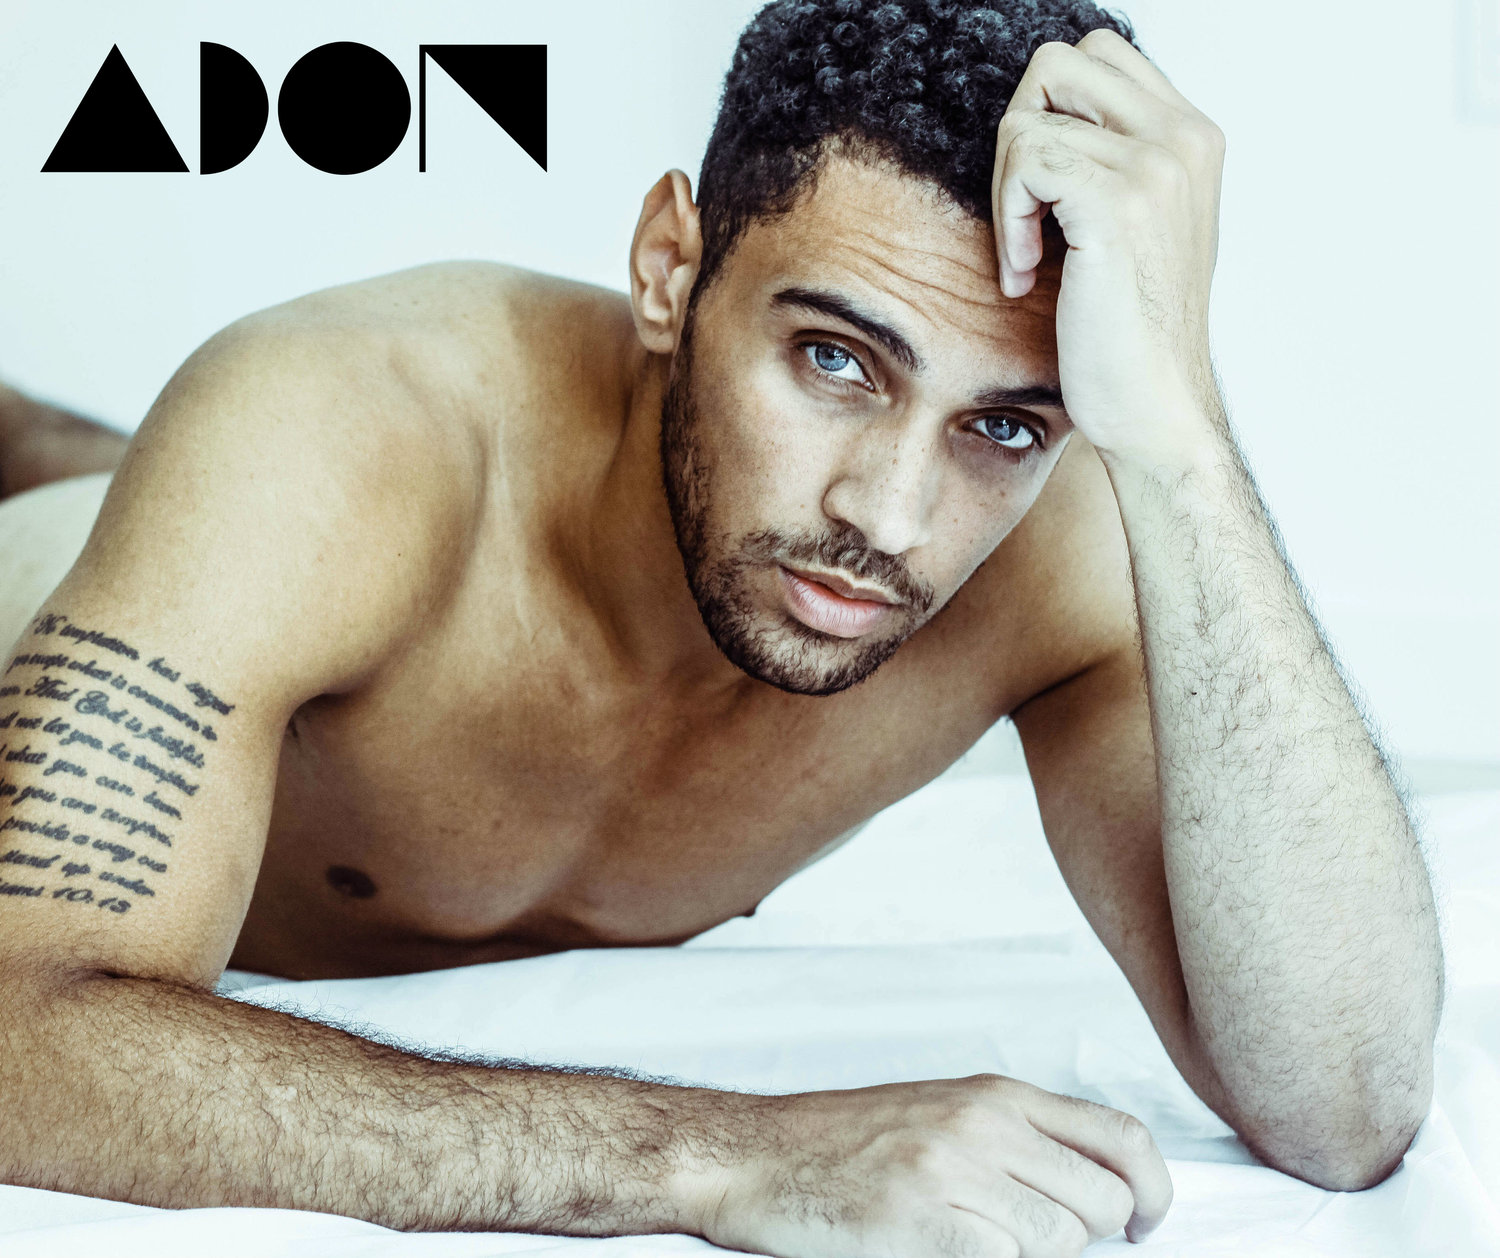 Adon Exclusive: Model Michael J Middleton By Chaniel Andran